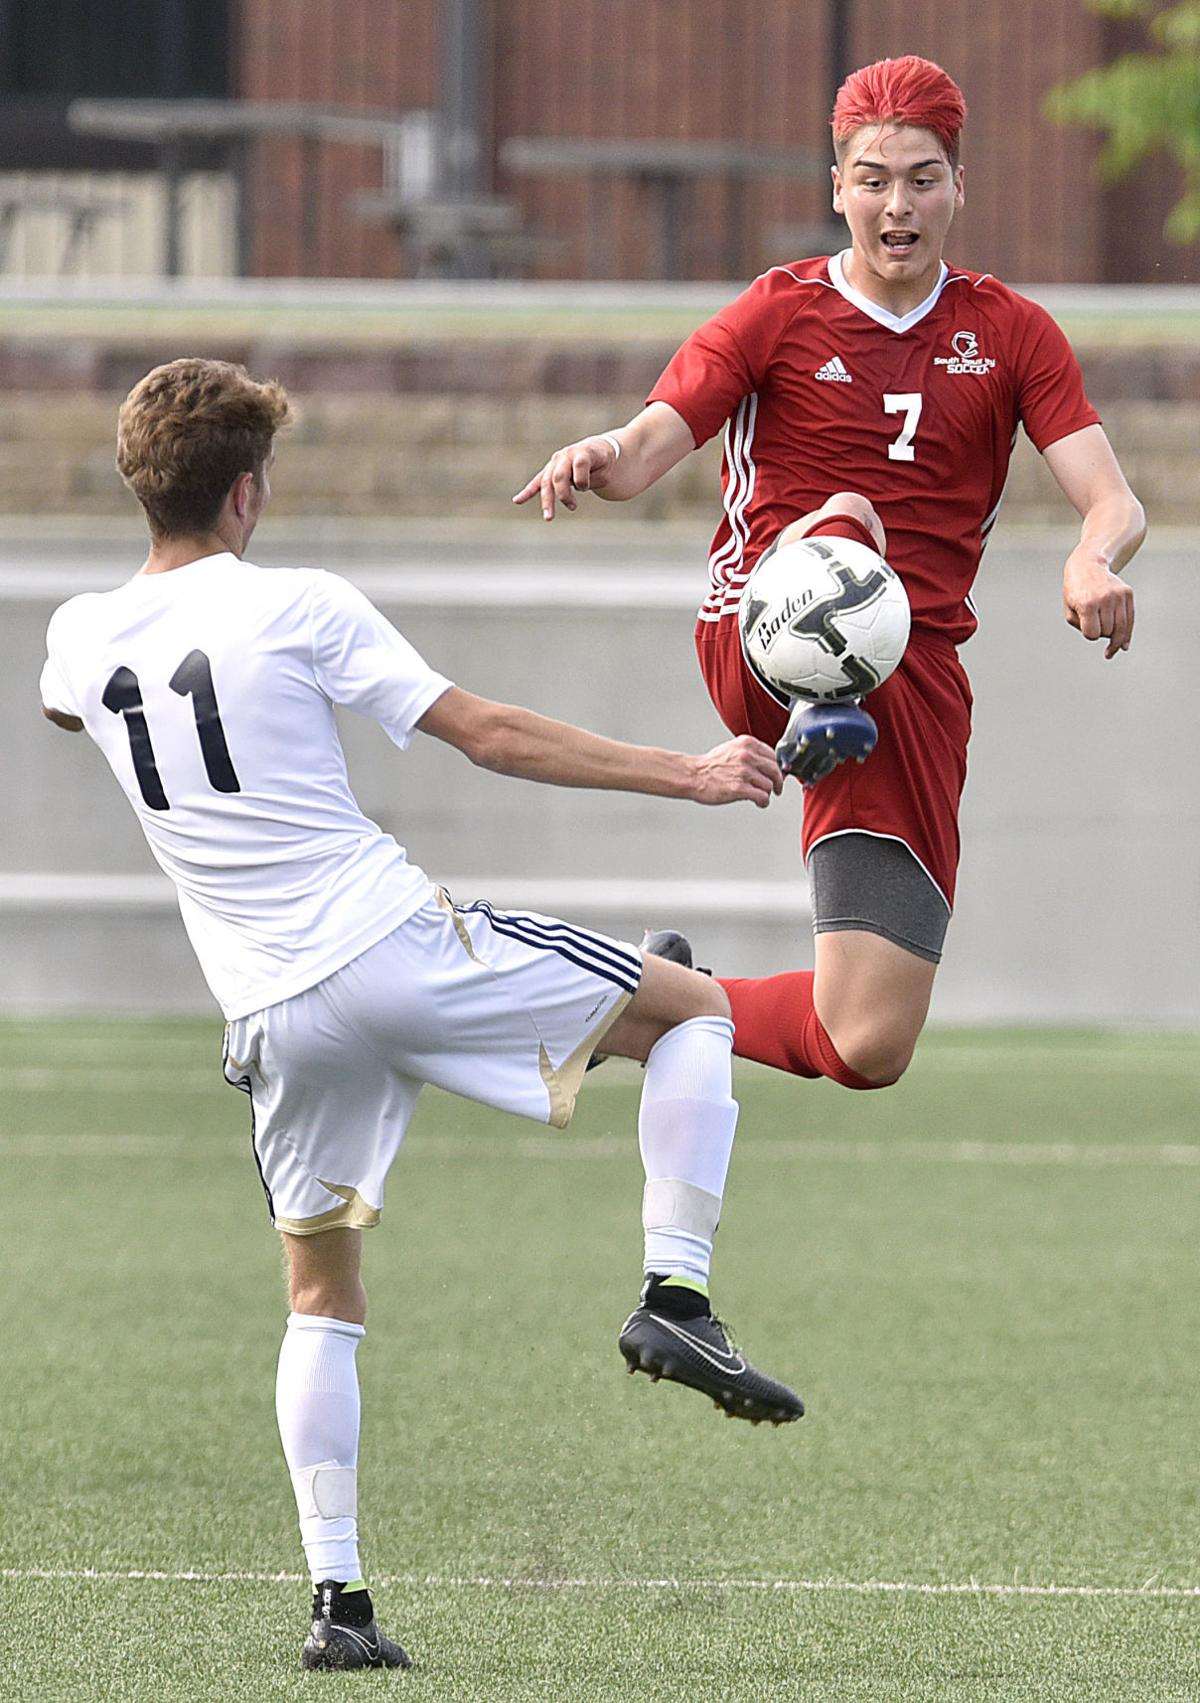 South Sioux City vs Elkhorn South state soccer